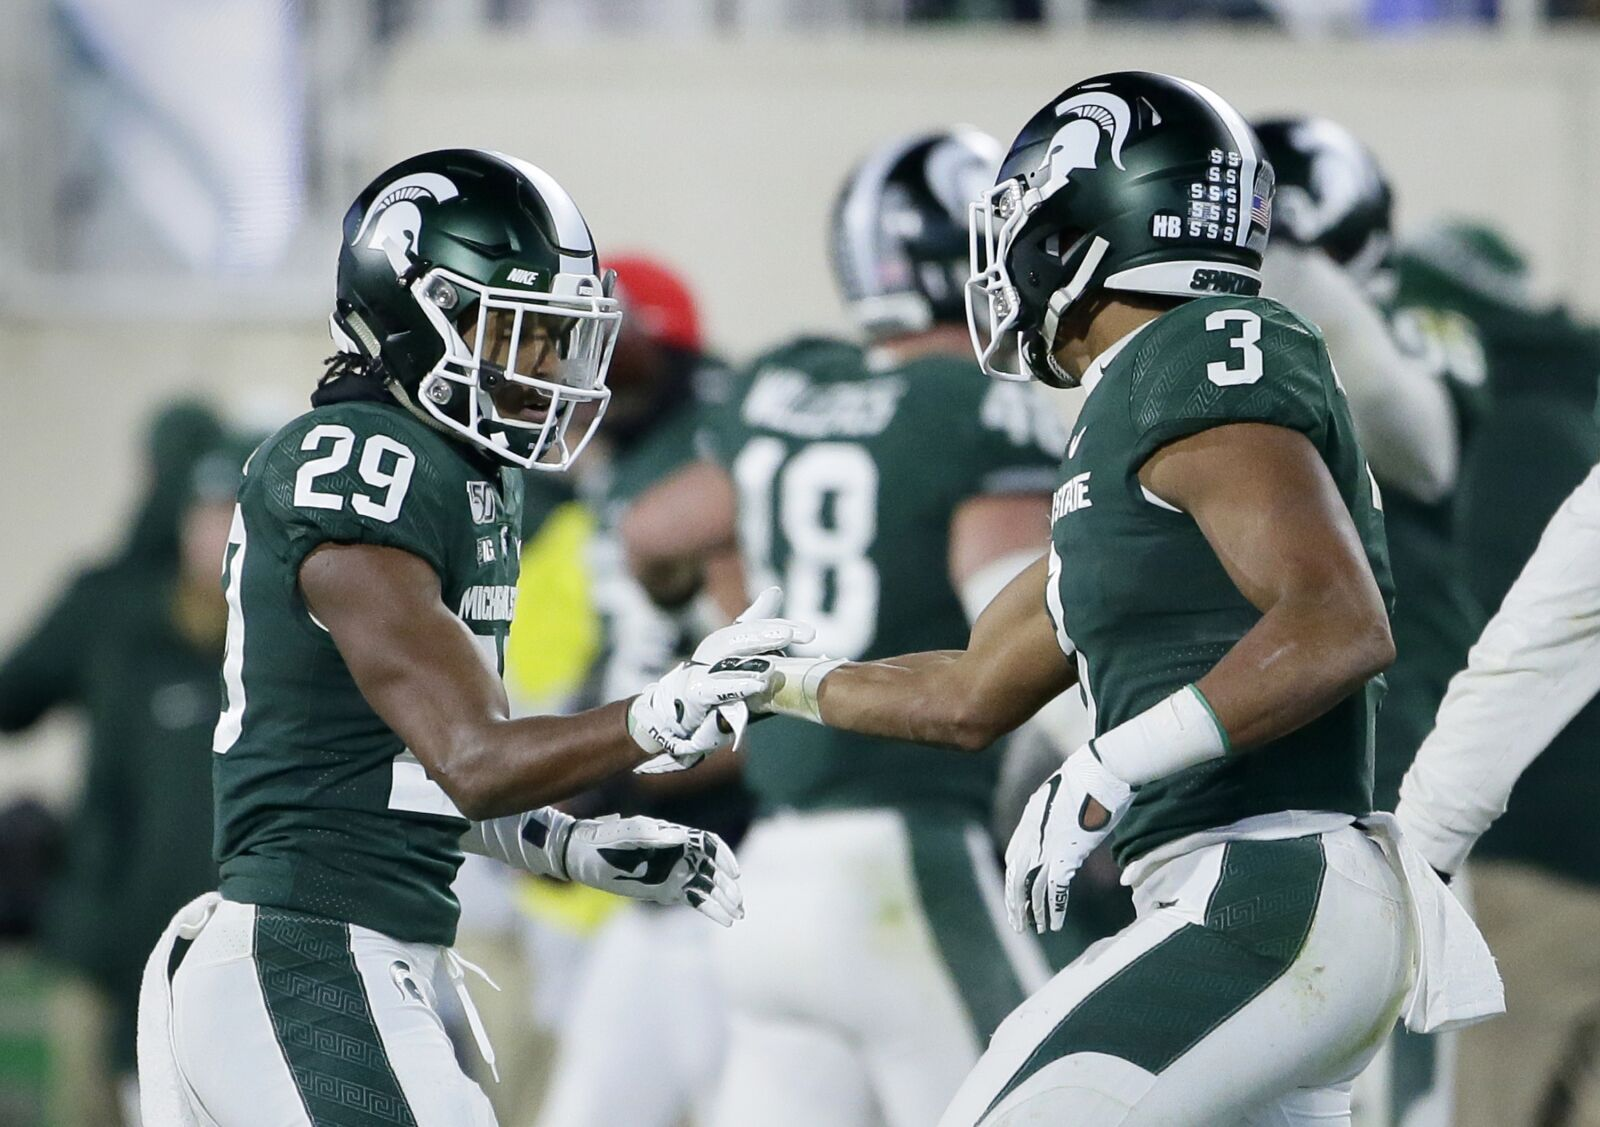 Michigan State Football: What 2019 bowl game will Spartans make?